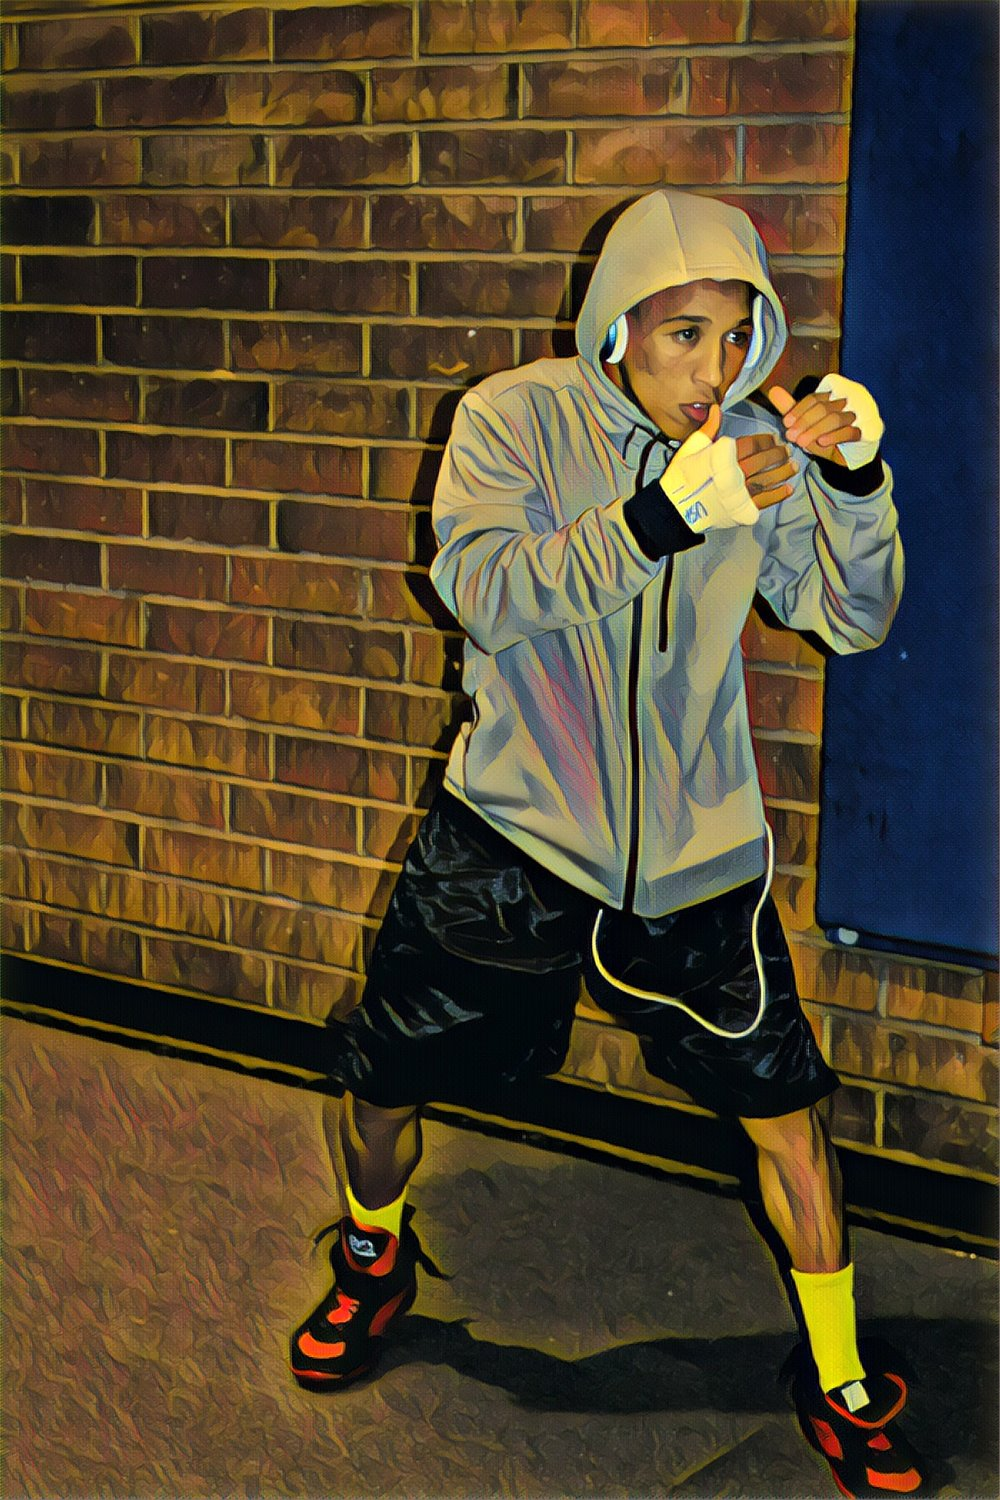 """Scrappy"" the Champ, California Golden Gloves, 2018, with Prisma App Enhancement"